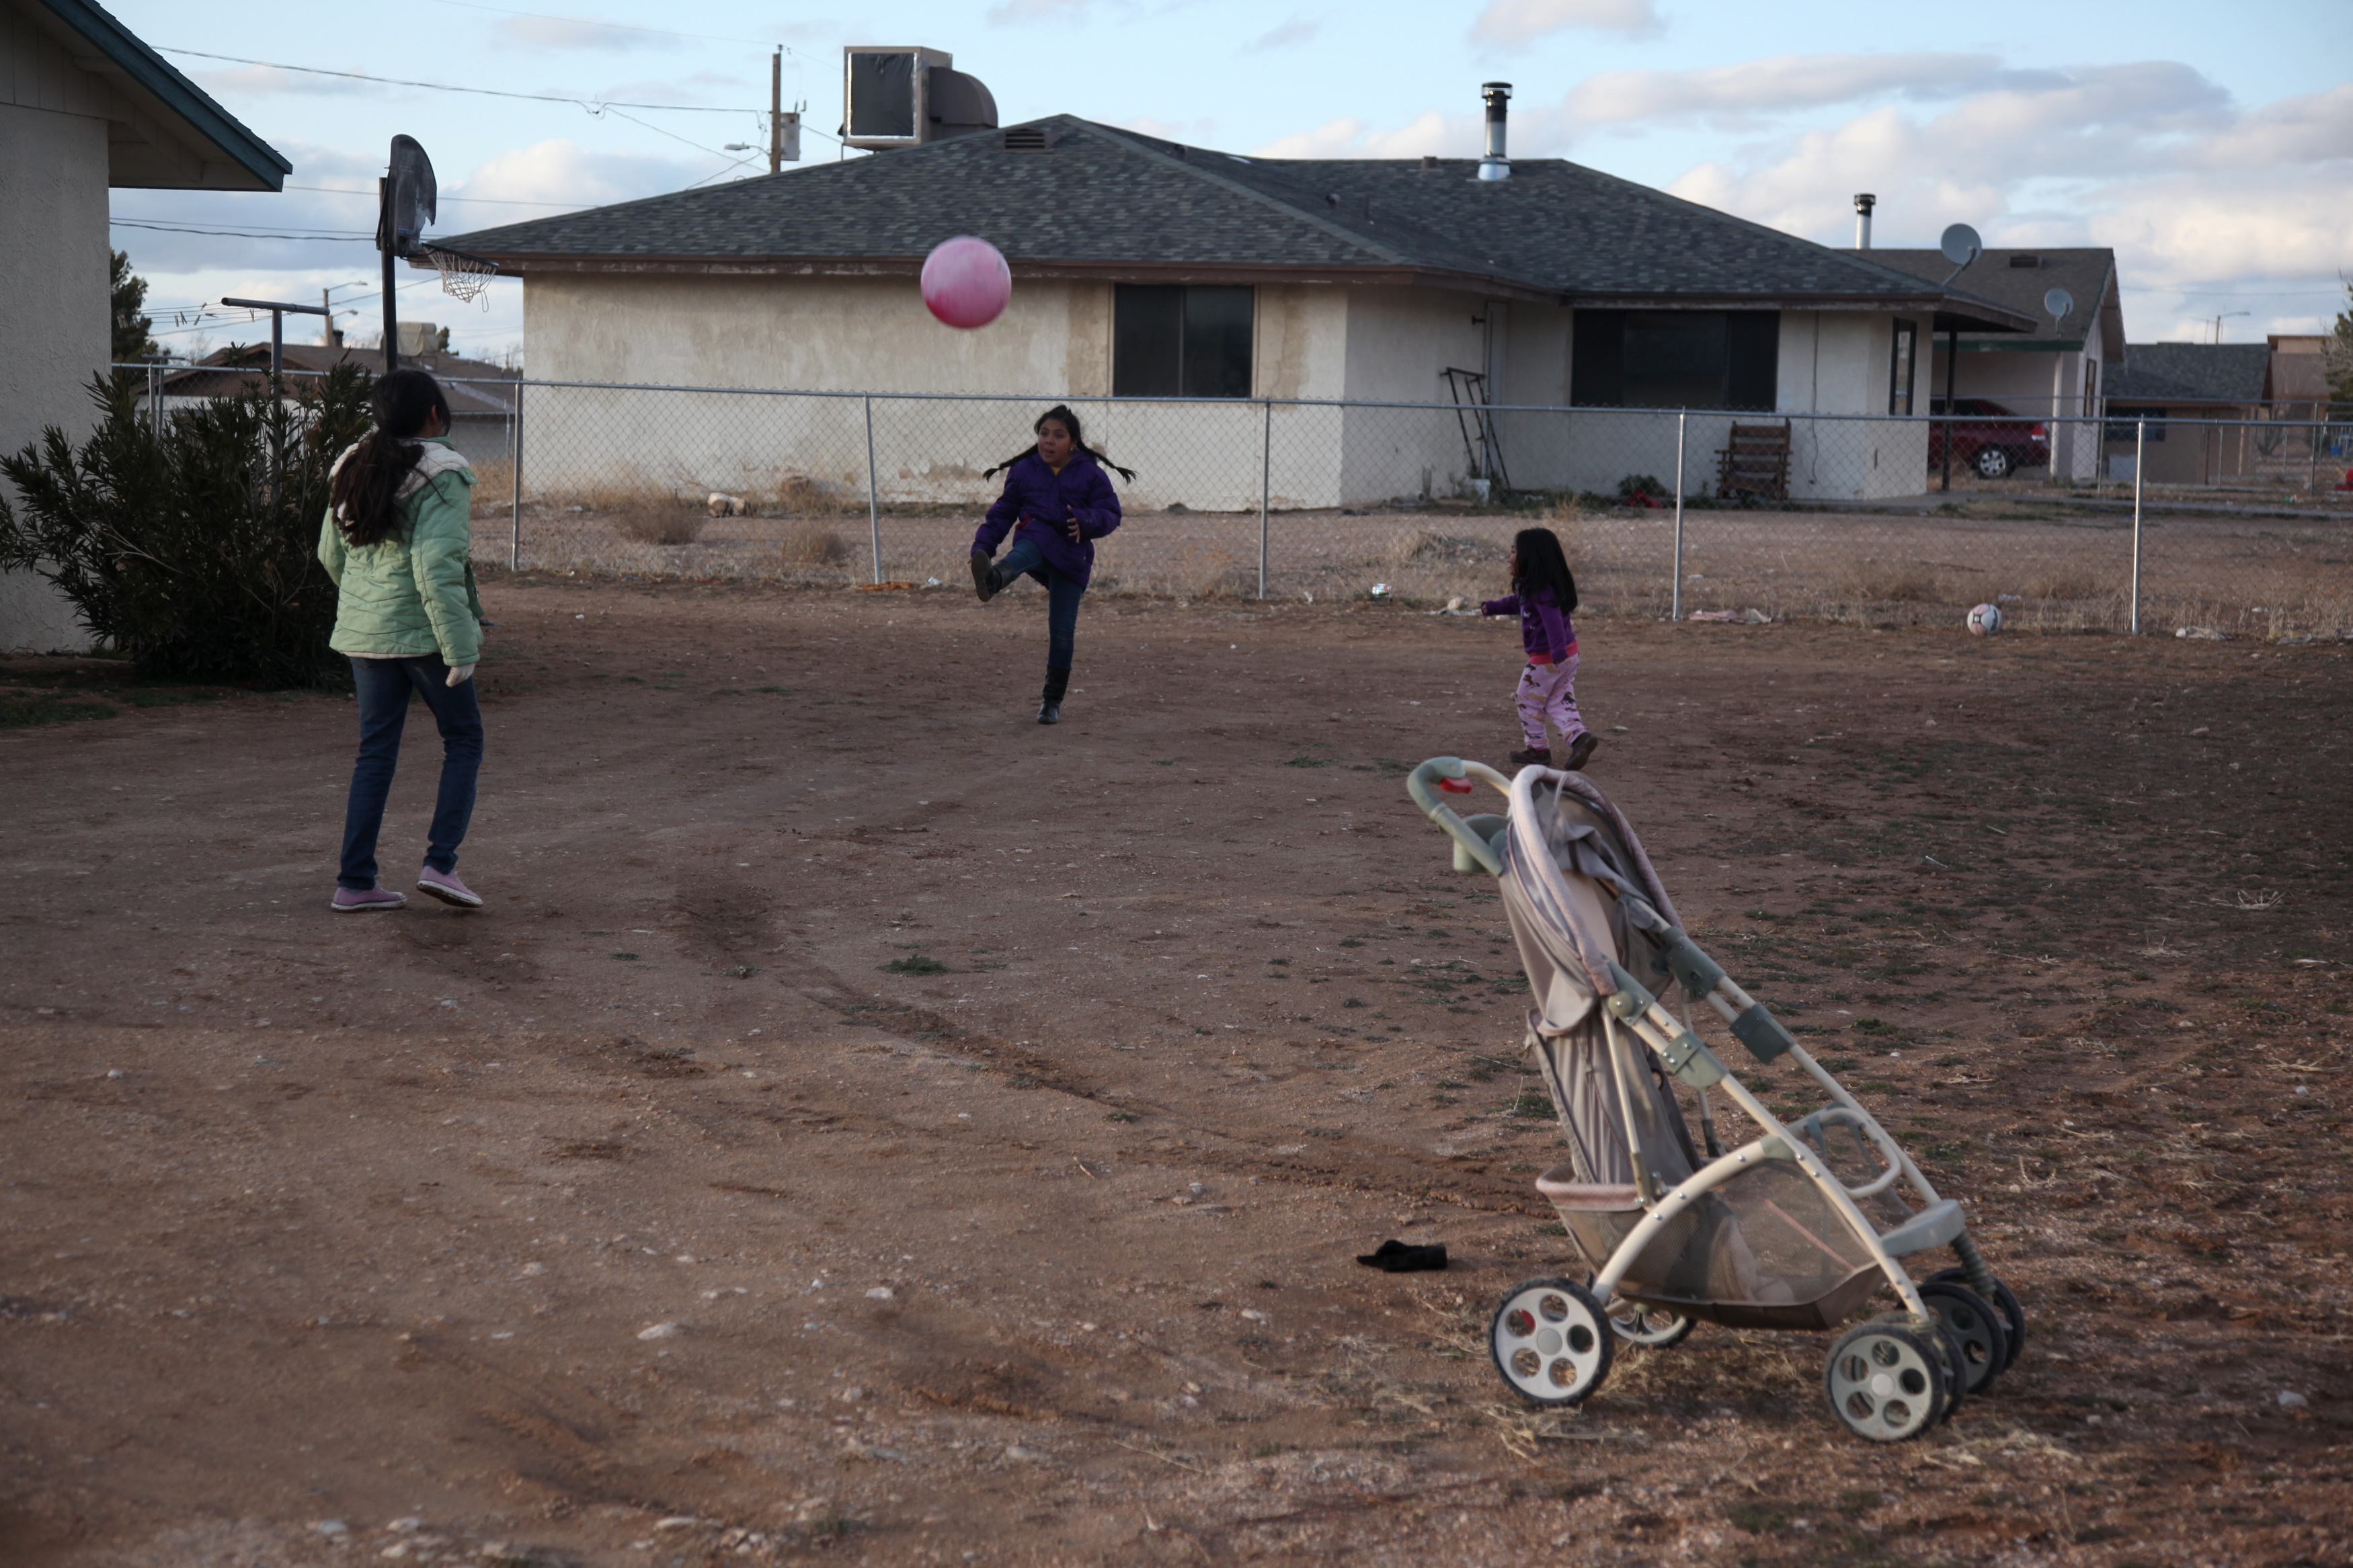 Children play in the yard of a home on the Hualapai Indian Reservation in Peach Springs, Ariz., Feb. 28, 2012.